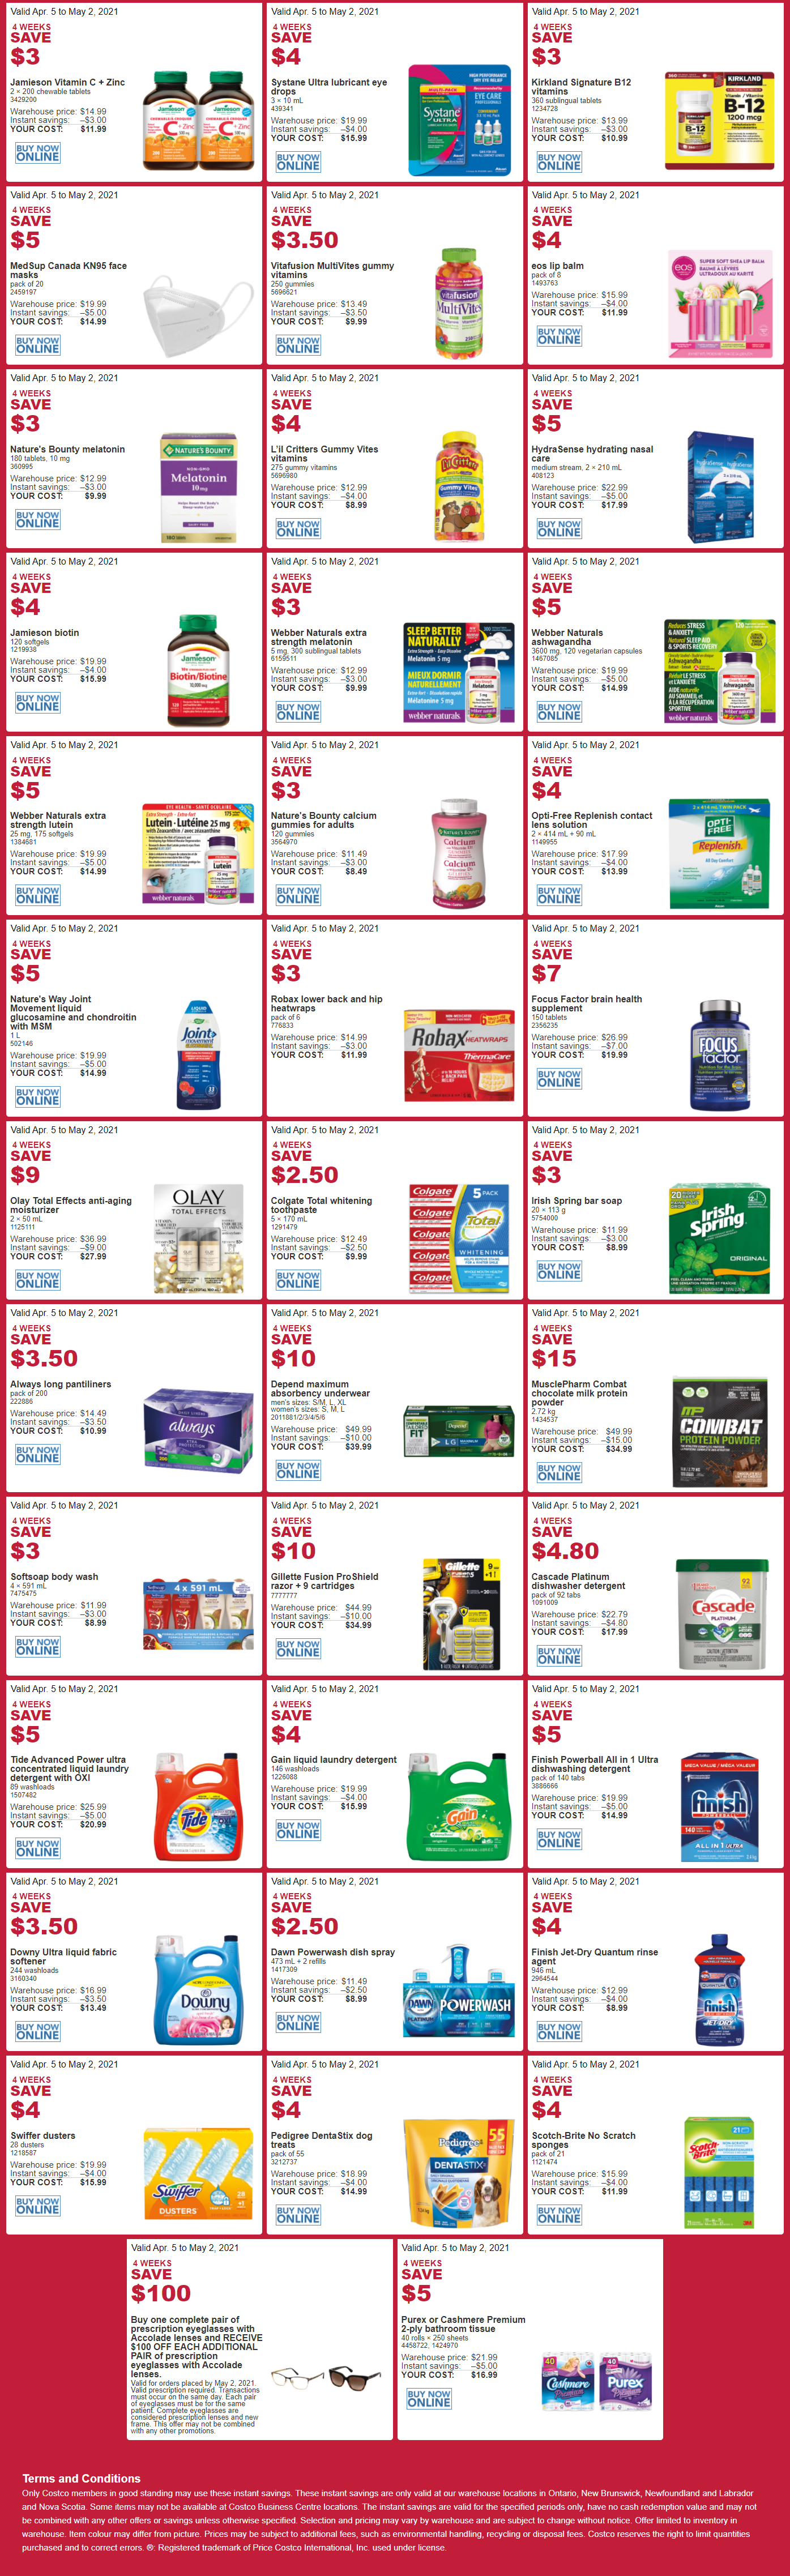 Costco - Monthly Savings - Page 4